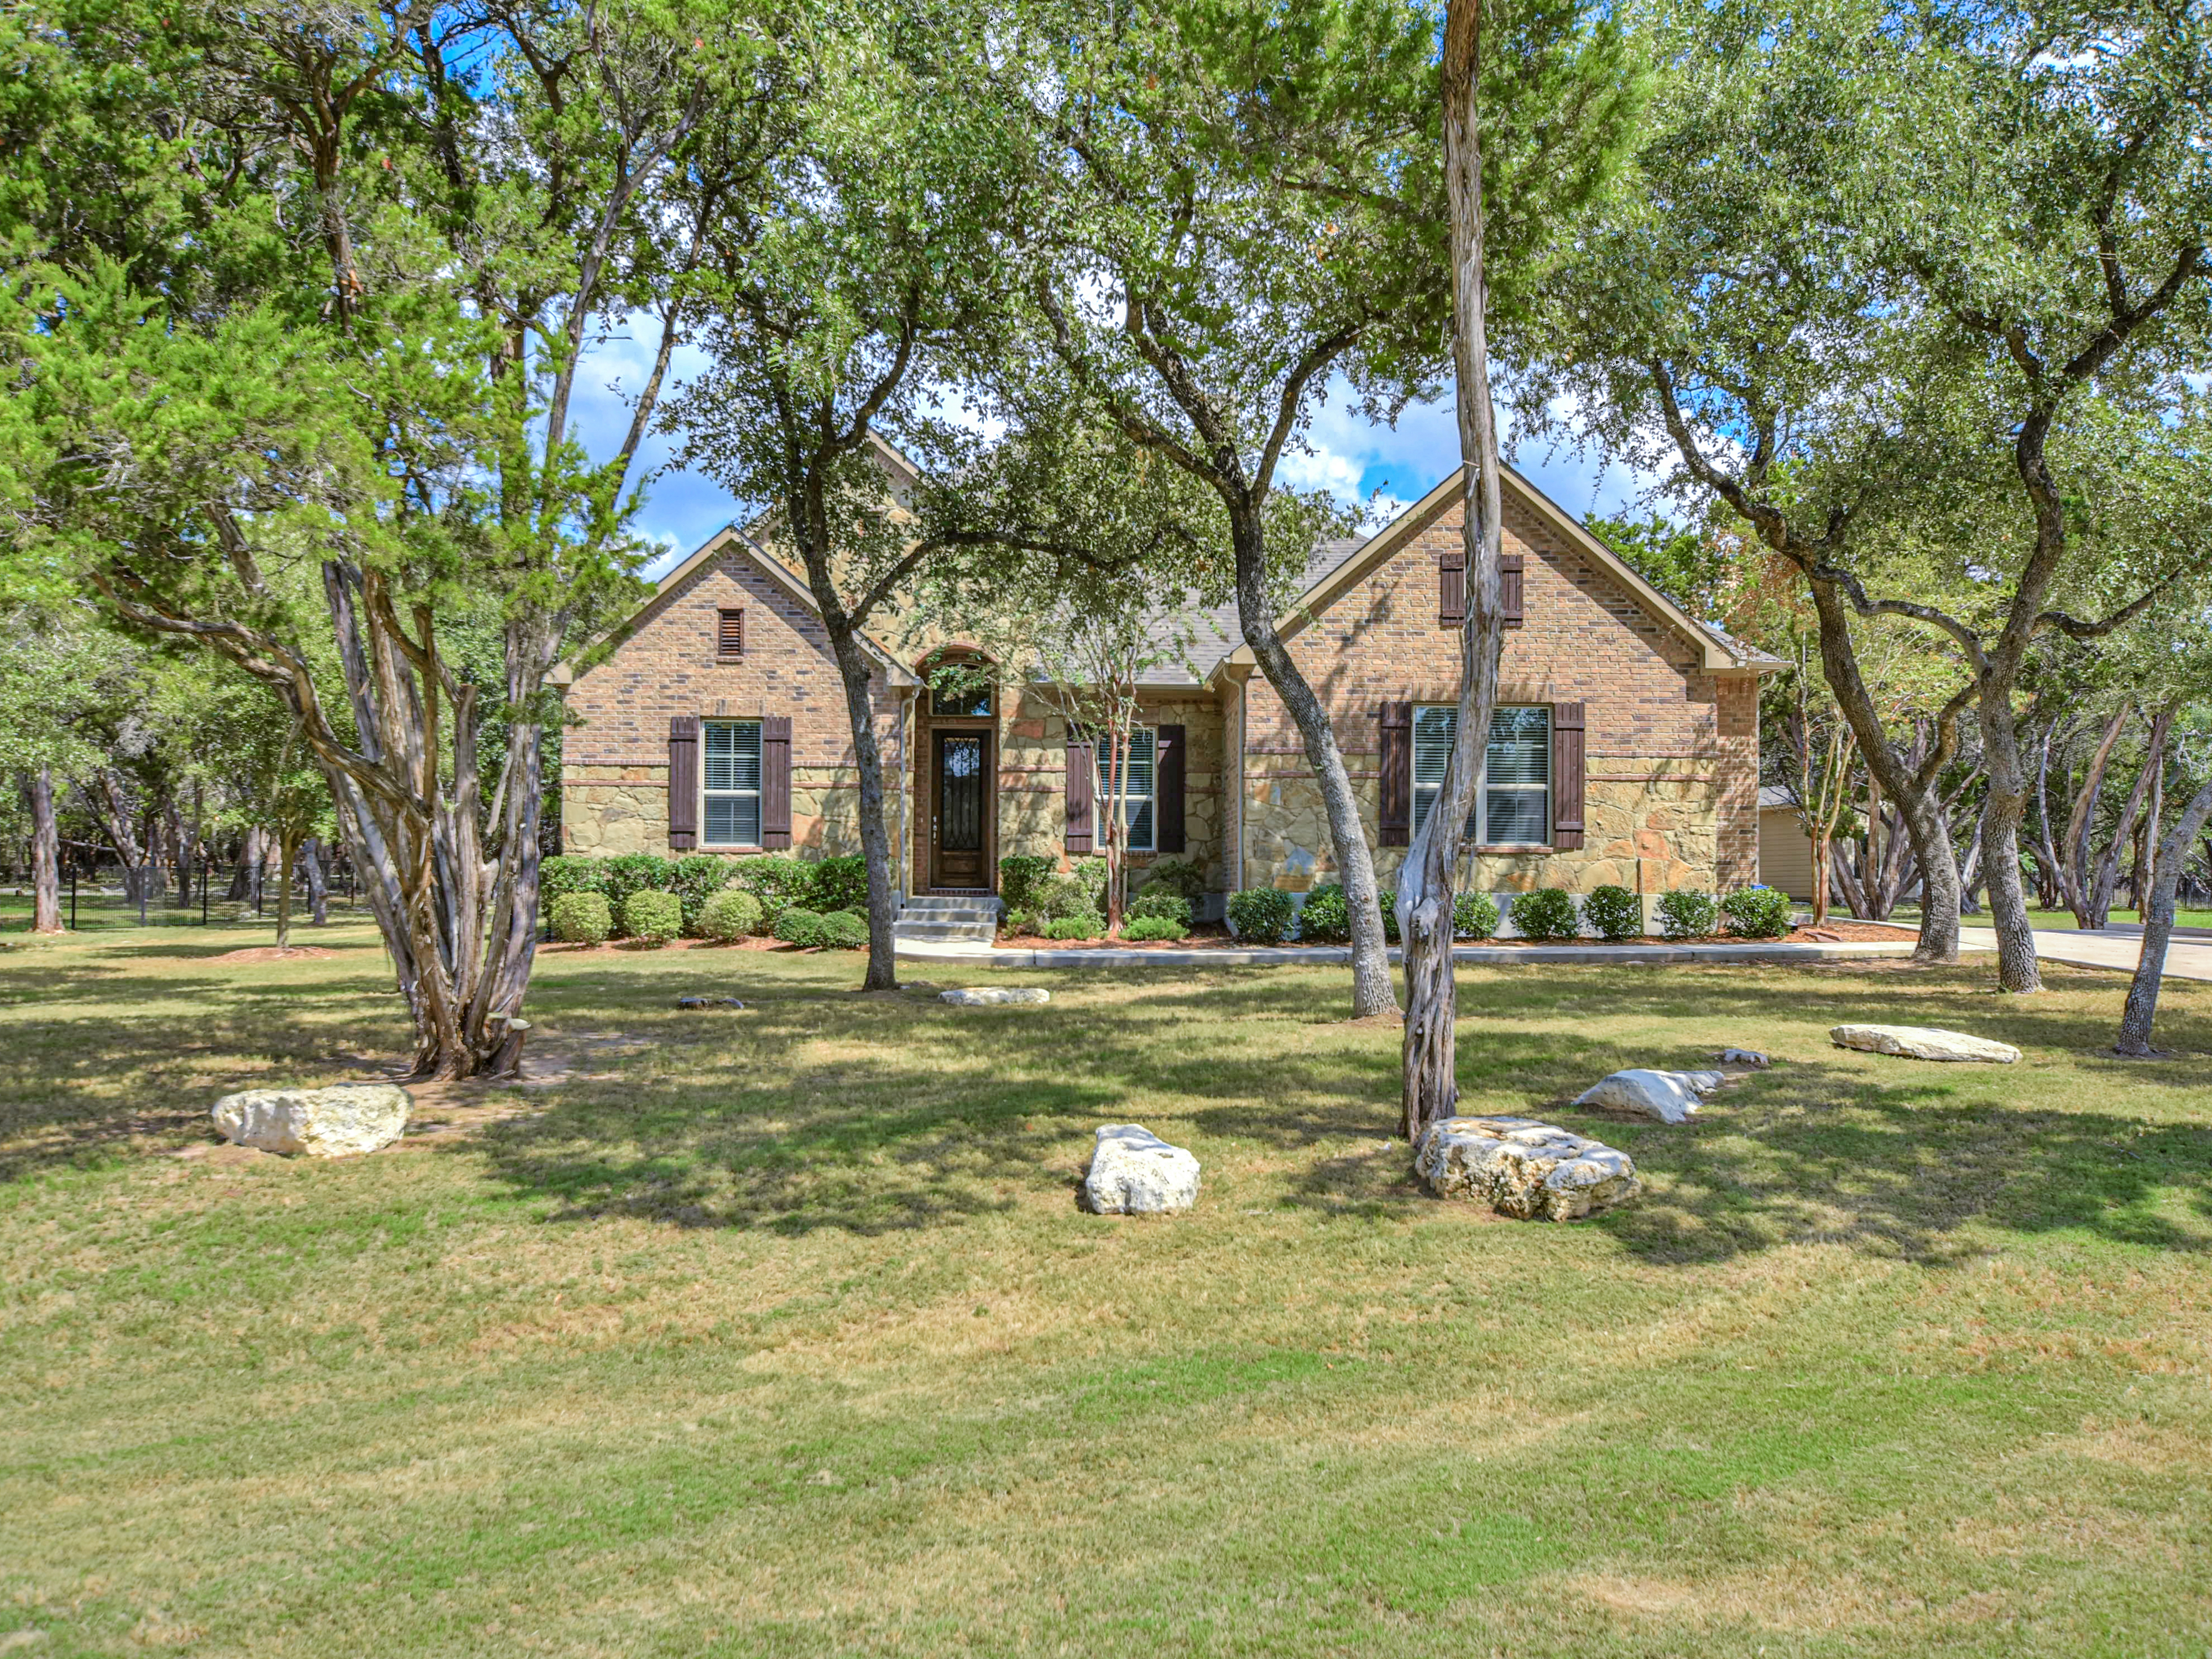 Single Family Home for sale in 1249 Flint Rock Loop, Driftwood, Texas ,78619